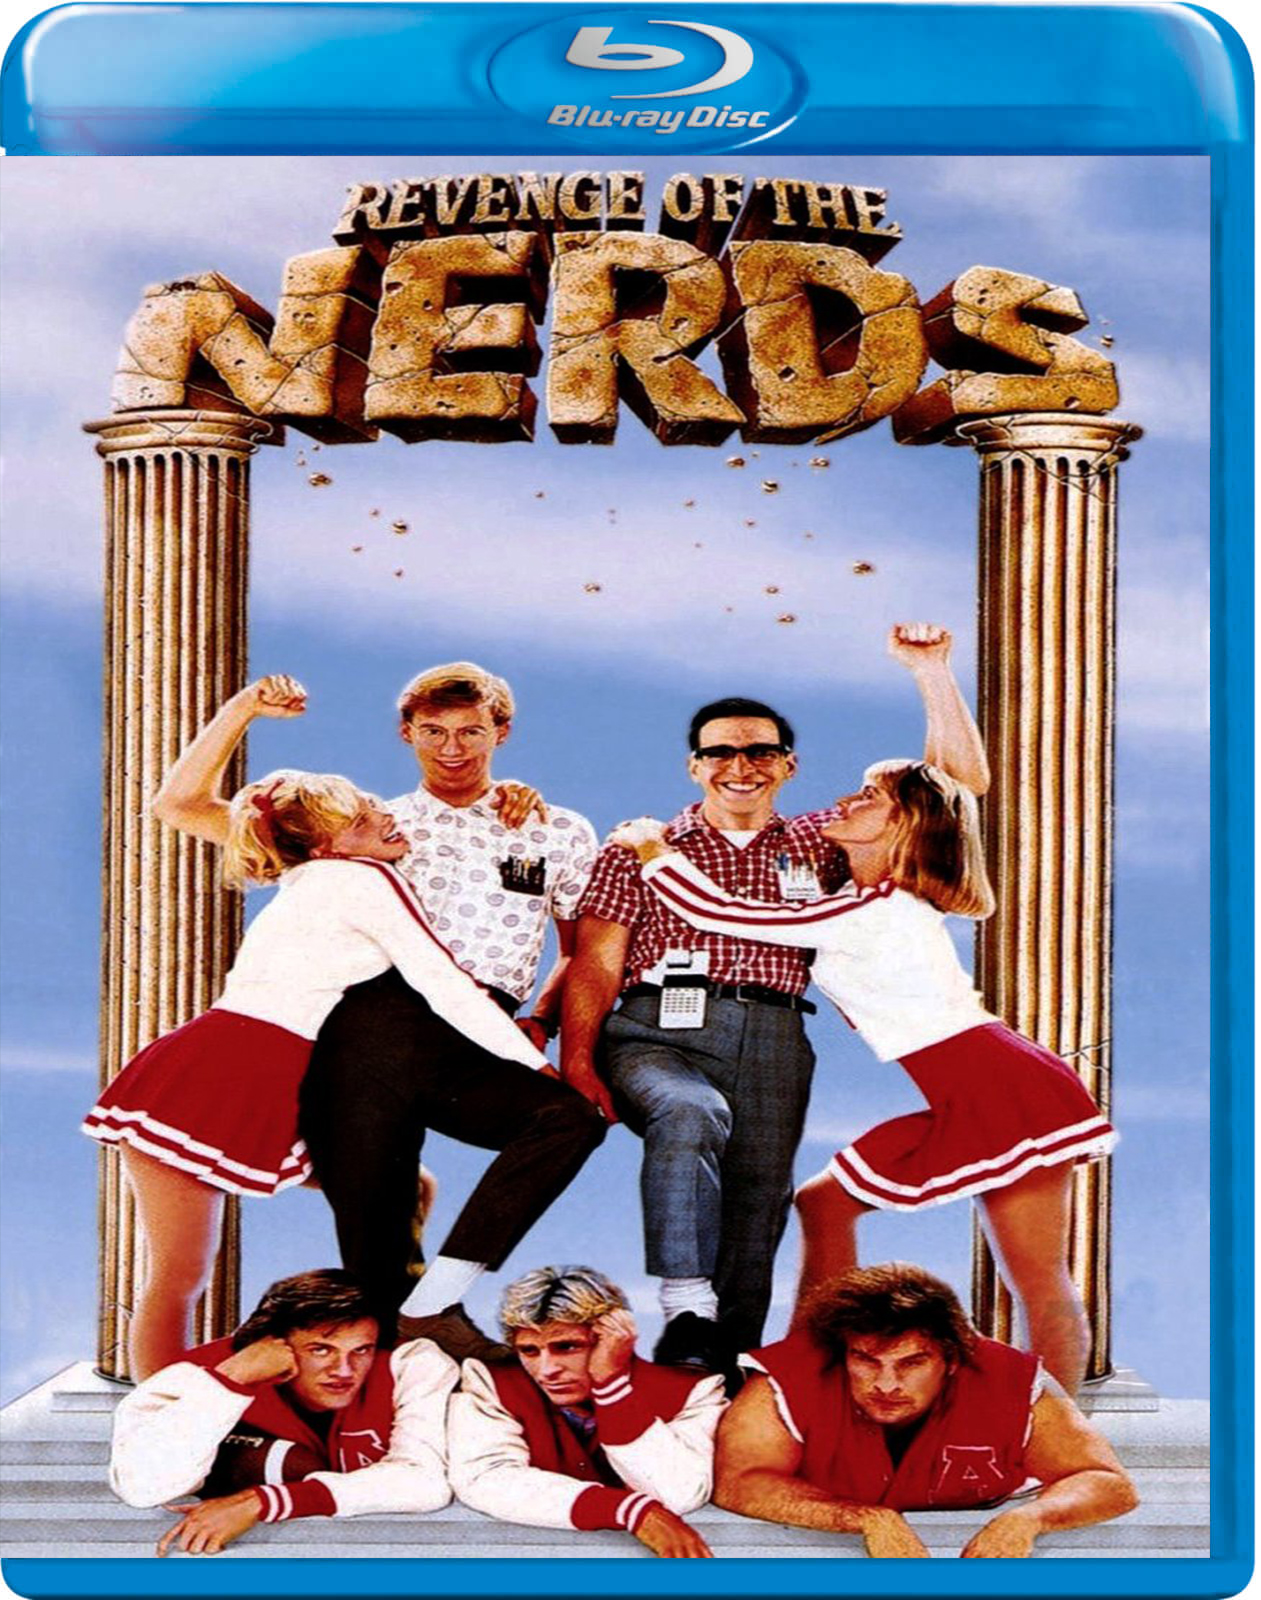 Revenge of the Nerds [1984] [BD50] [Latino]